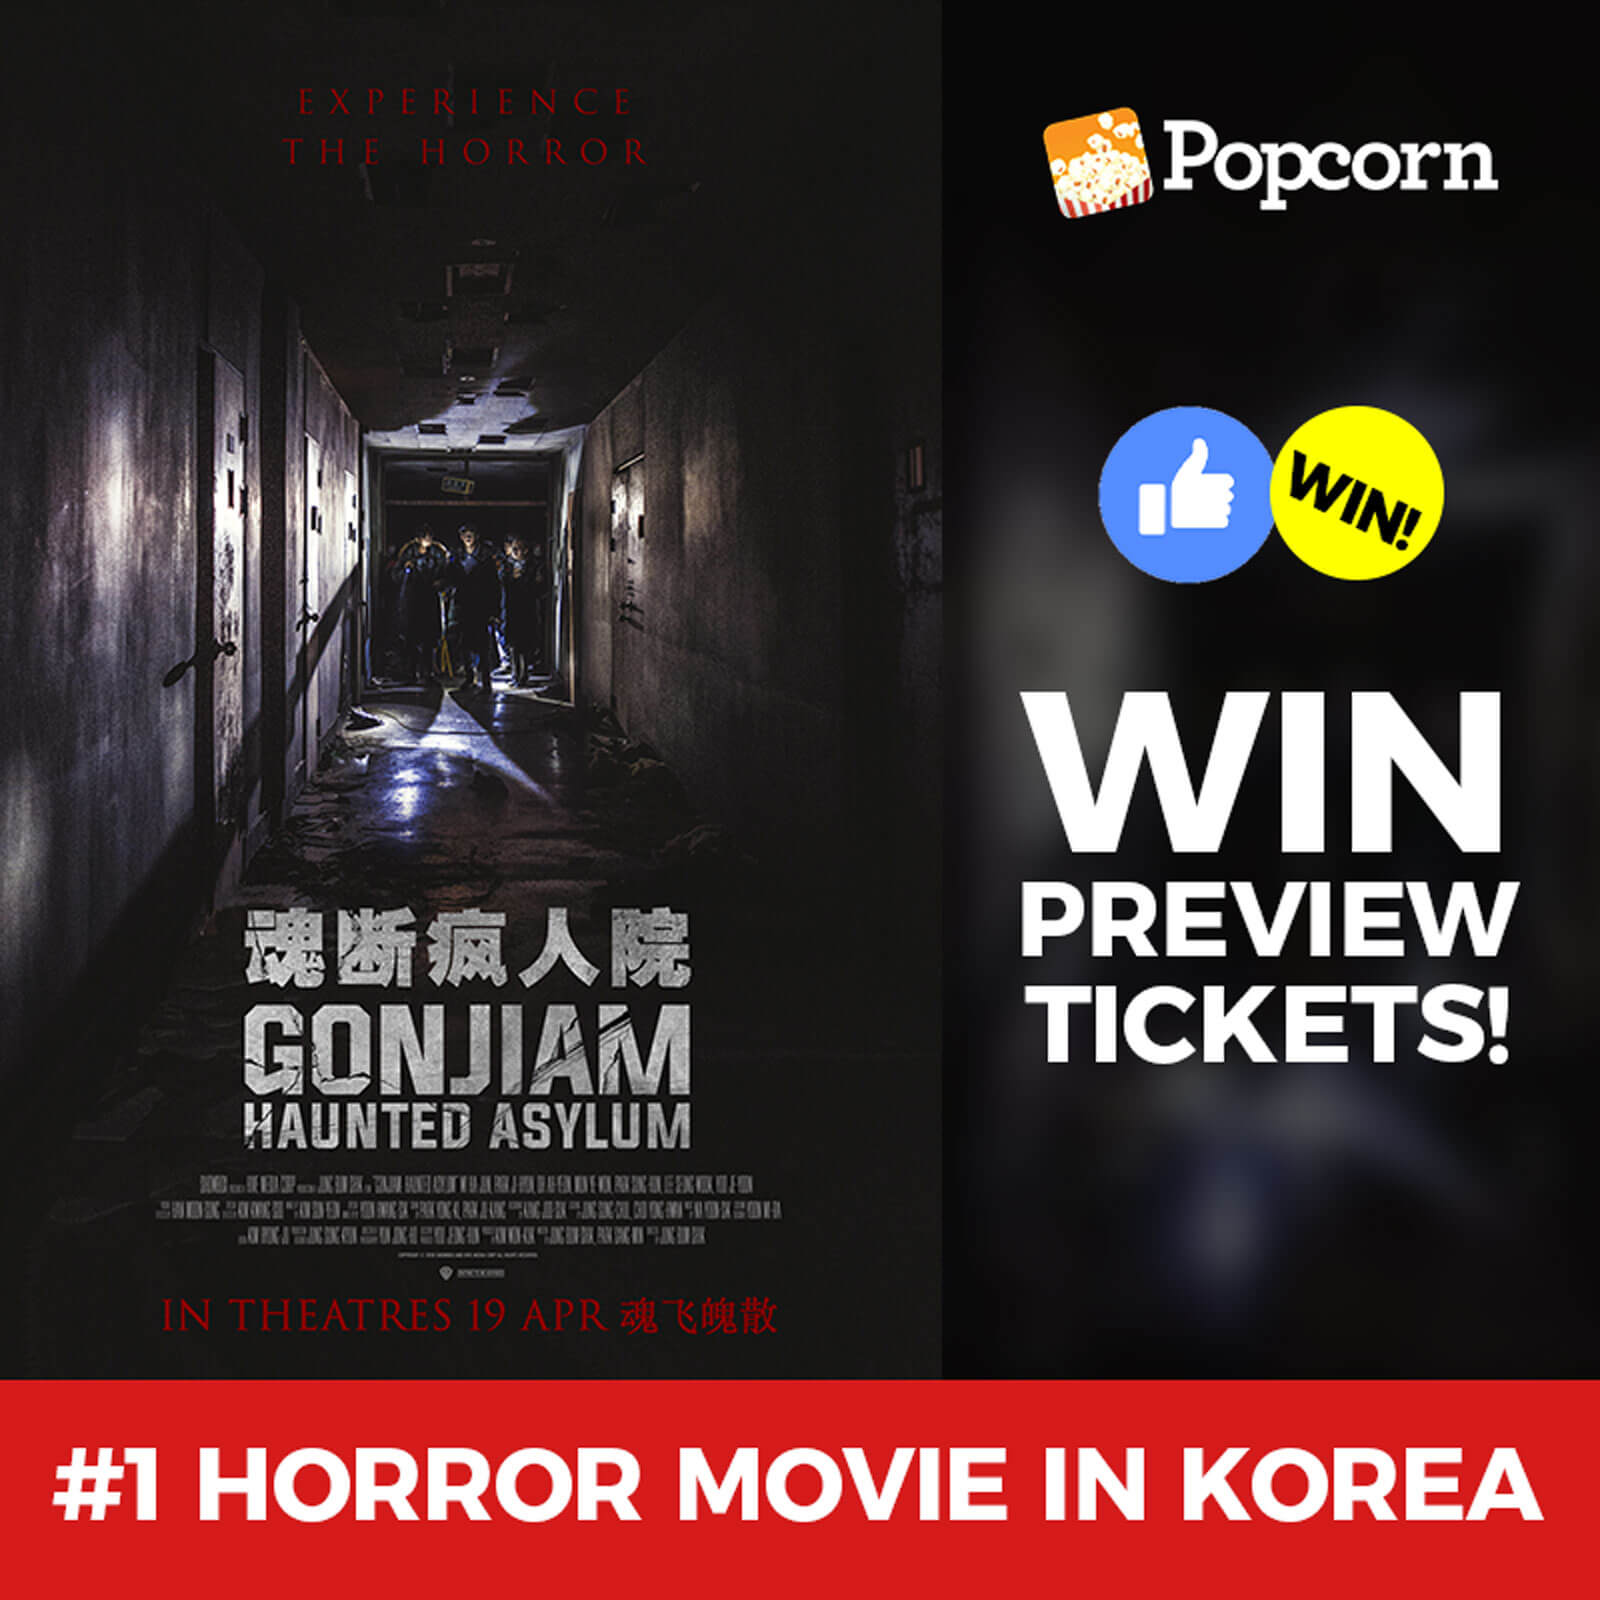 [CLOSED] Win A Pair Of Preview Tickets To #1 Korean Horror Movie 'Gonjiam: Haunted Asylum'